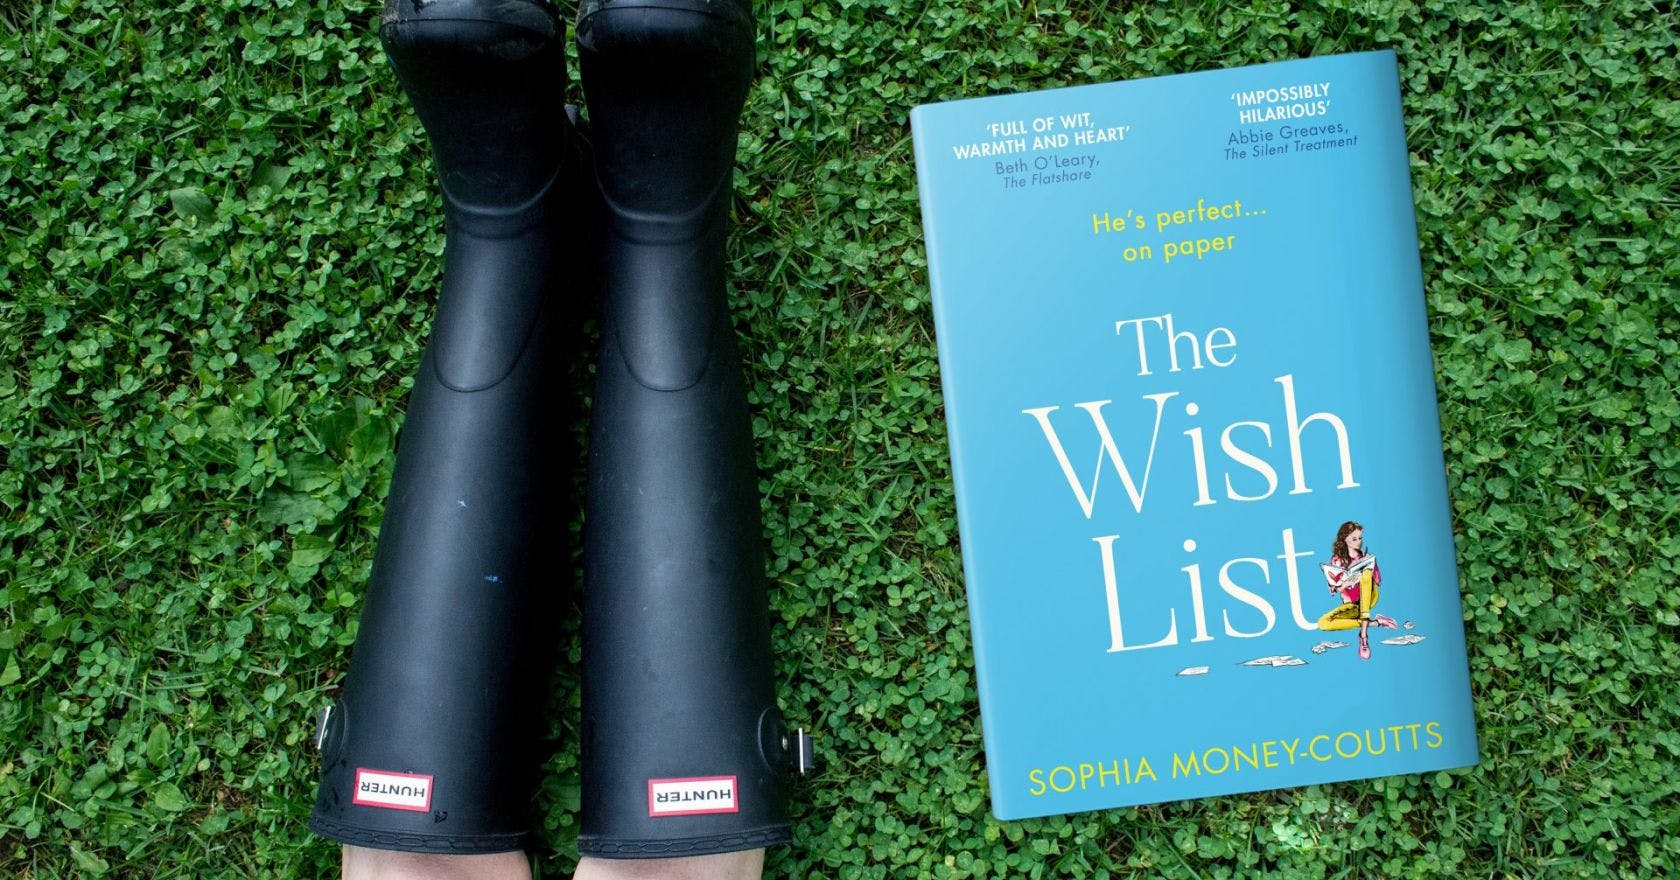 Win Hunter wellies plus a copy of The Wish List by Sophia Money-Coutts